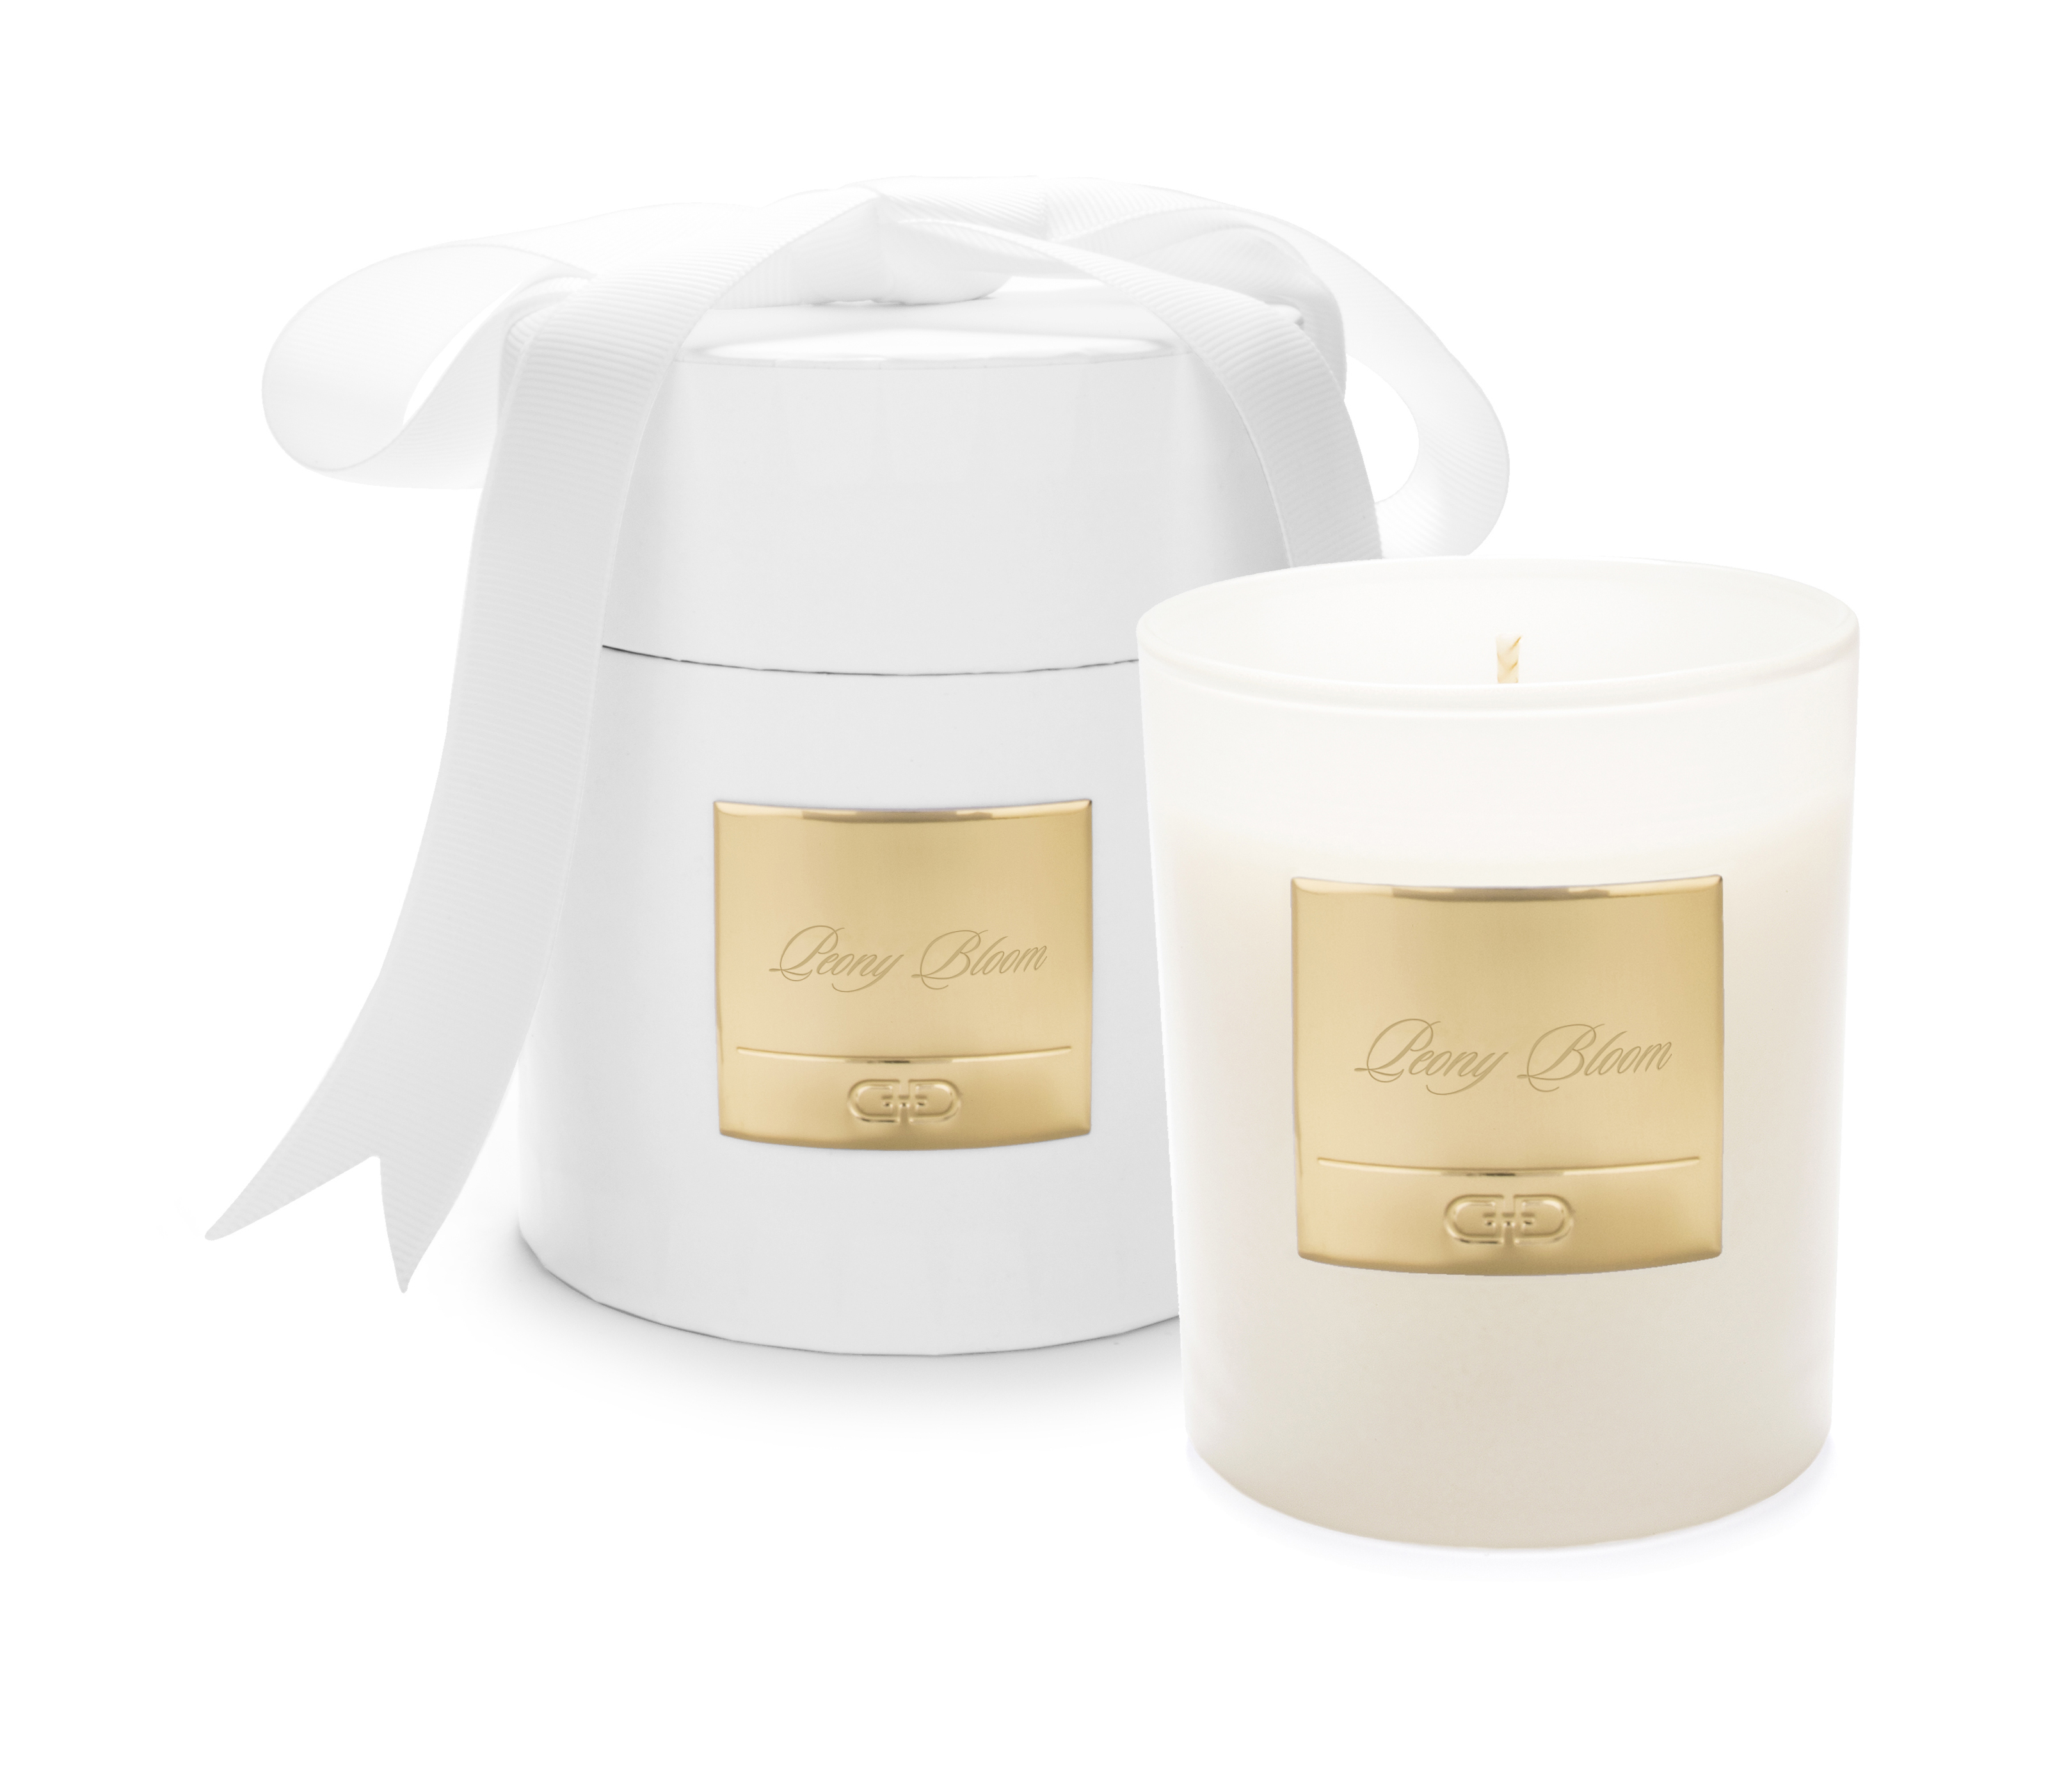 Peony Bloom – White & Gold luxury candle